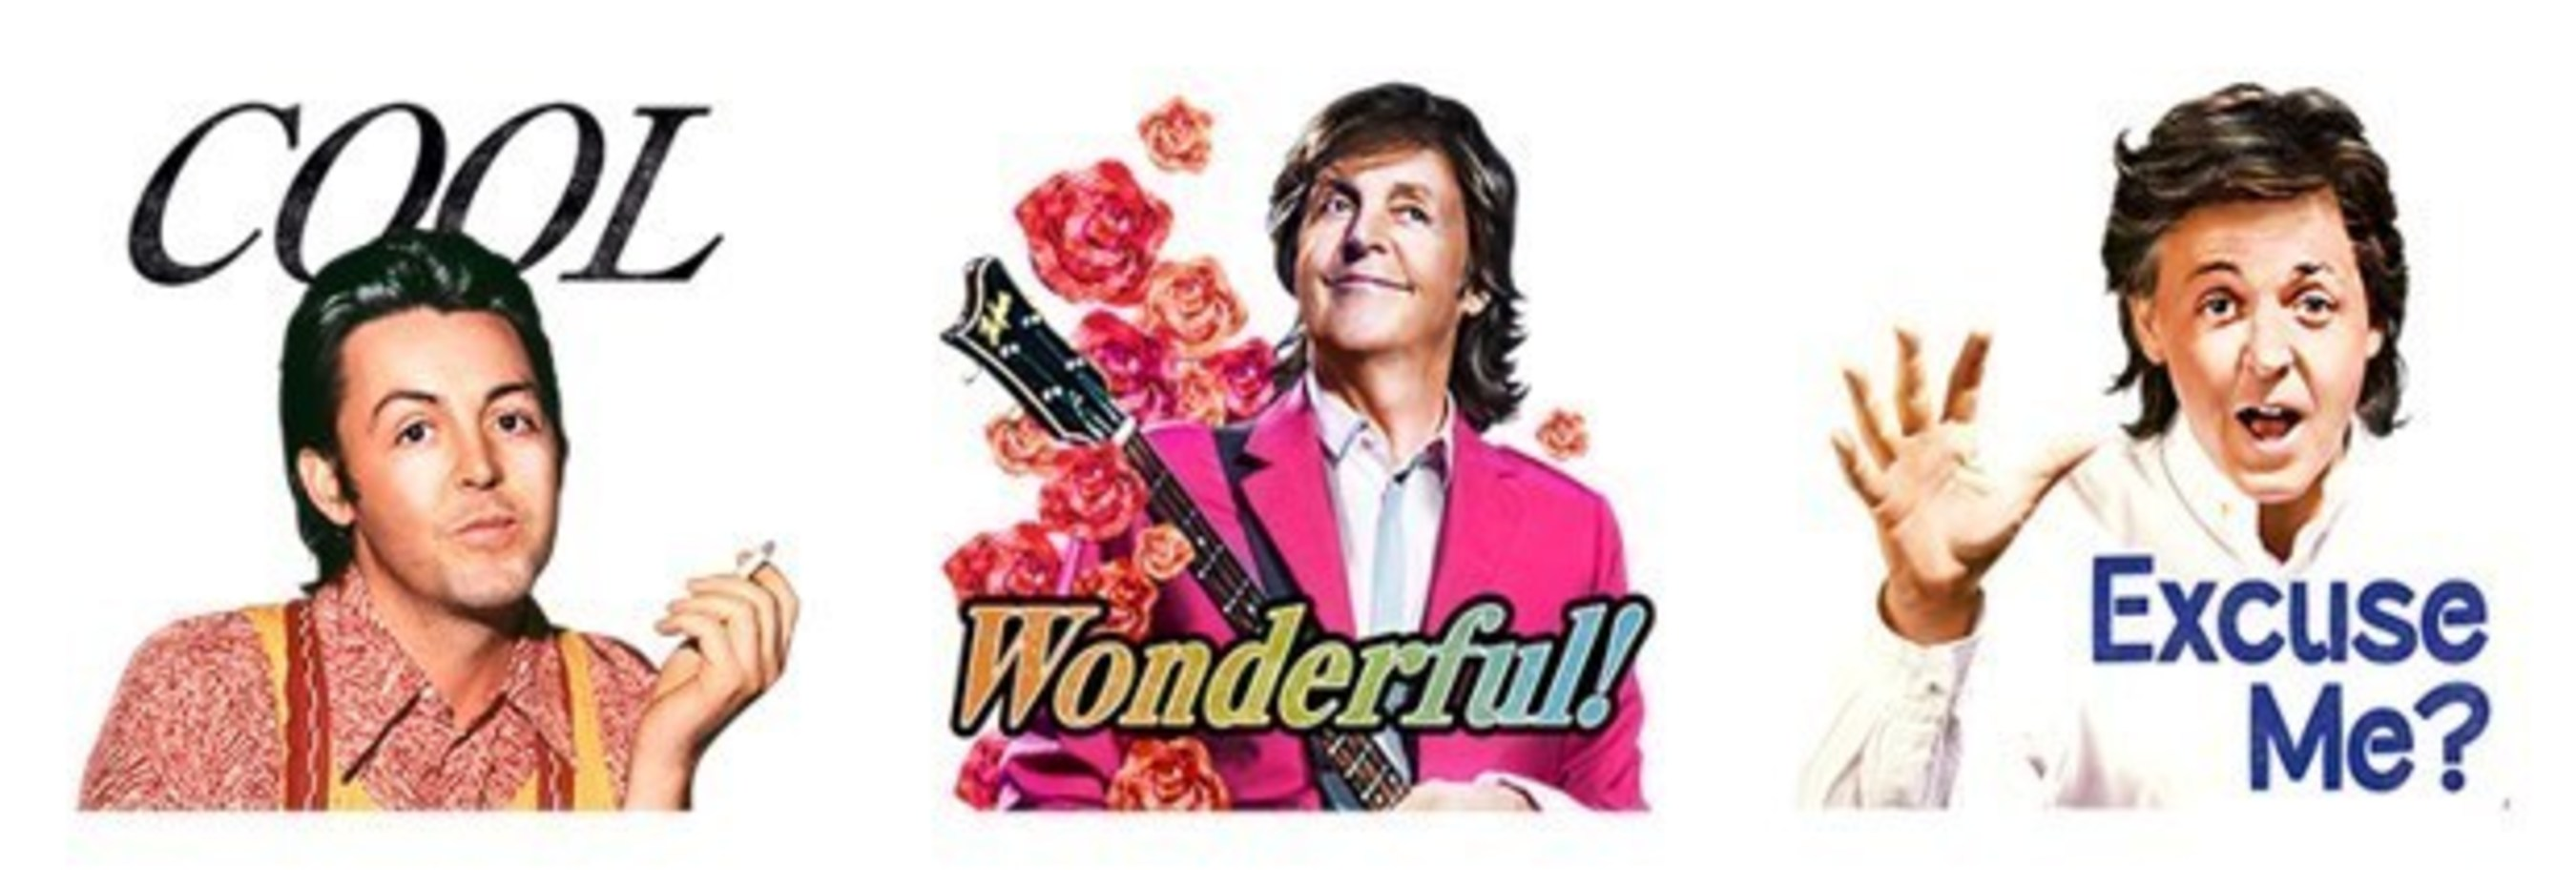 LINE Launches Sound LINE Stickers Worldwide - First Round of Sound LINE Stickers Available for Purchase Worldwide Featuring World-Famous Musician Paul McCartney's Voice